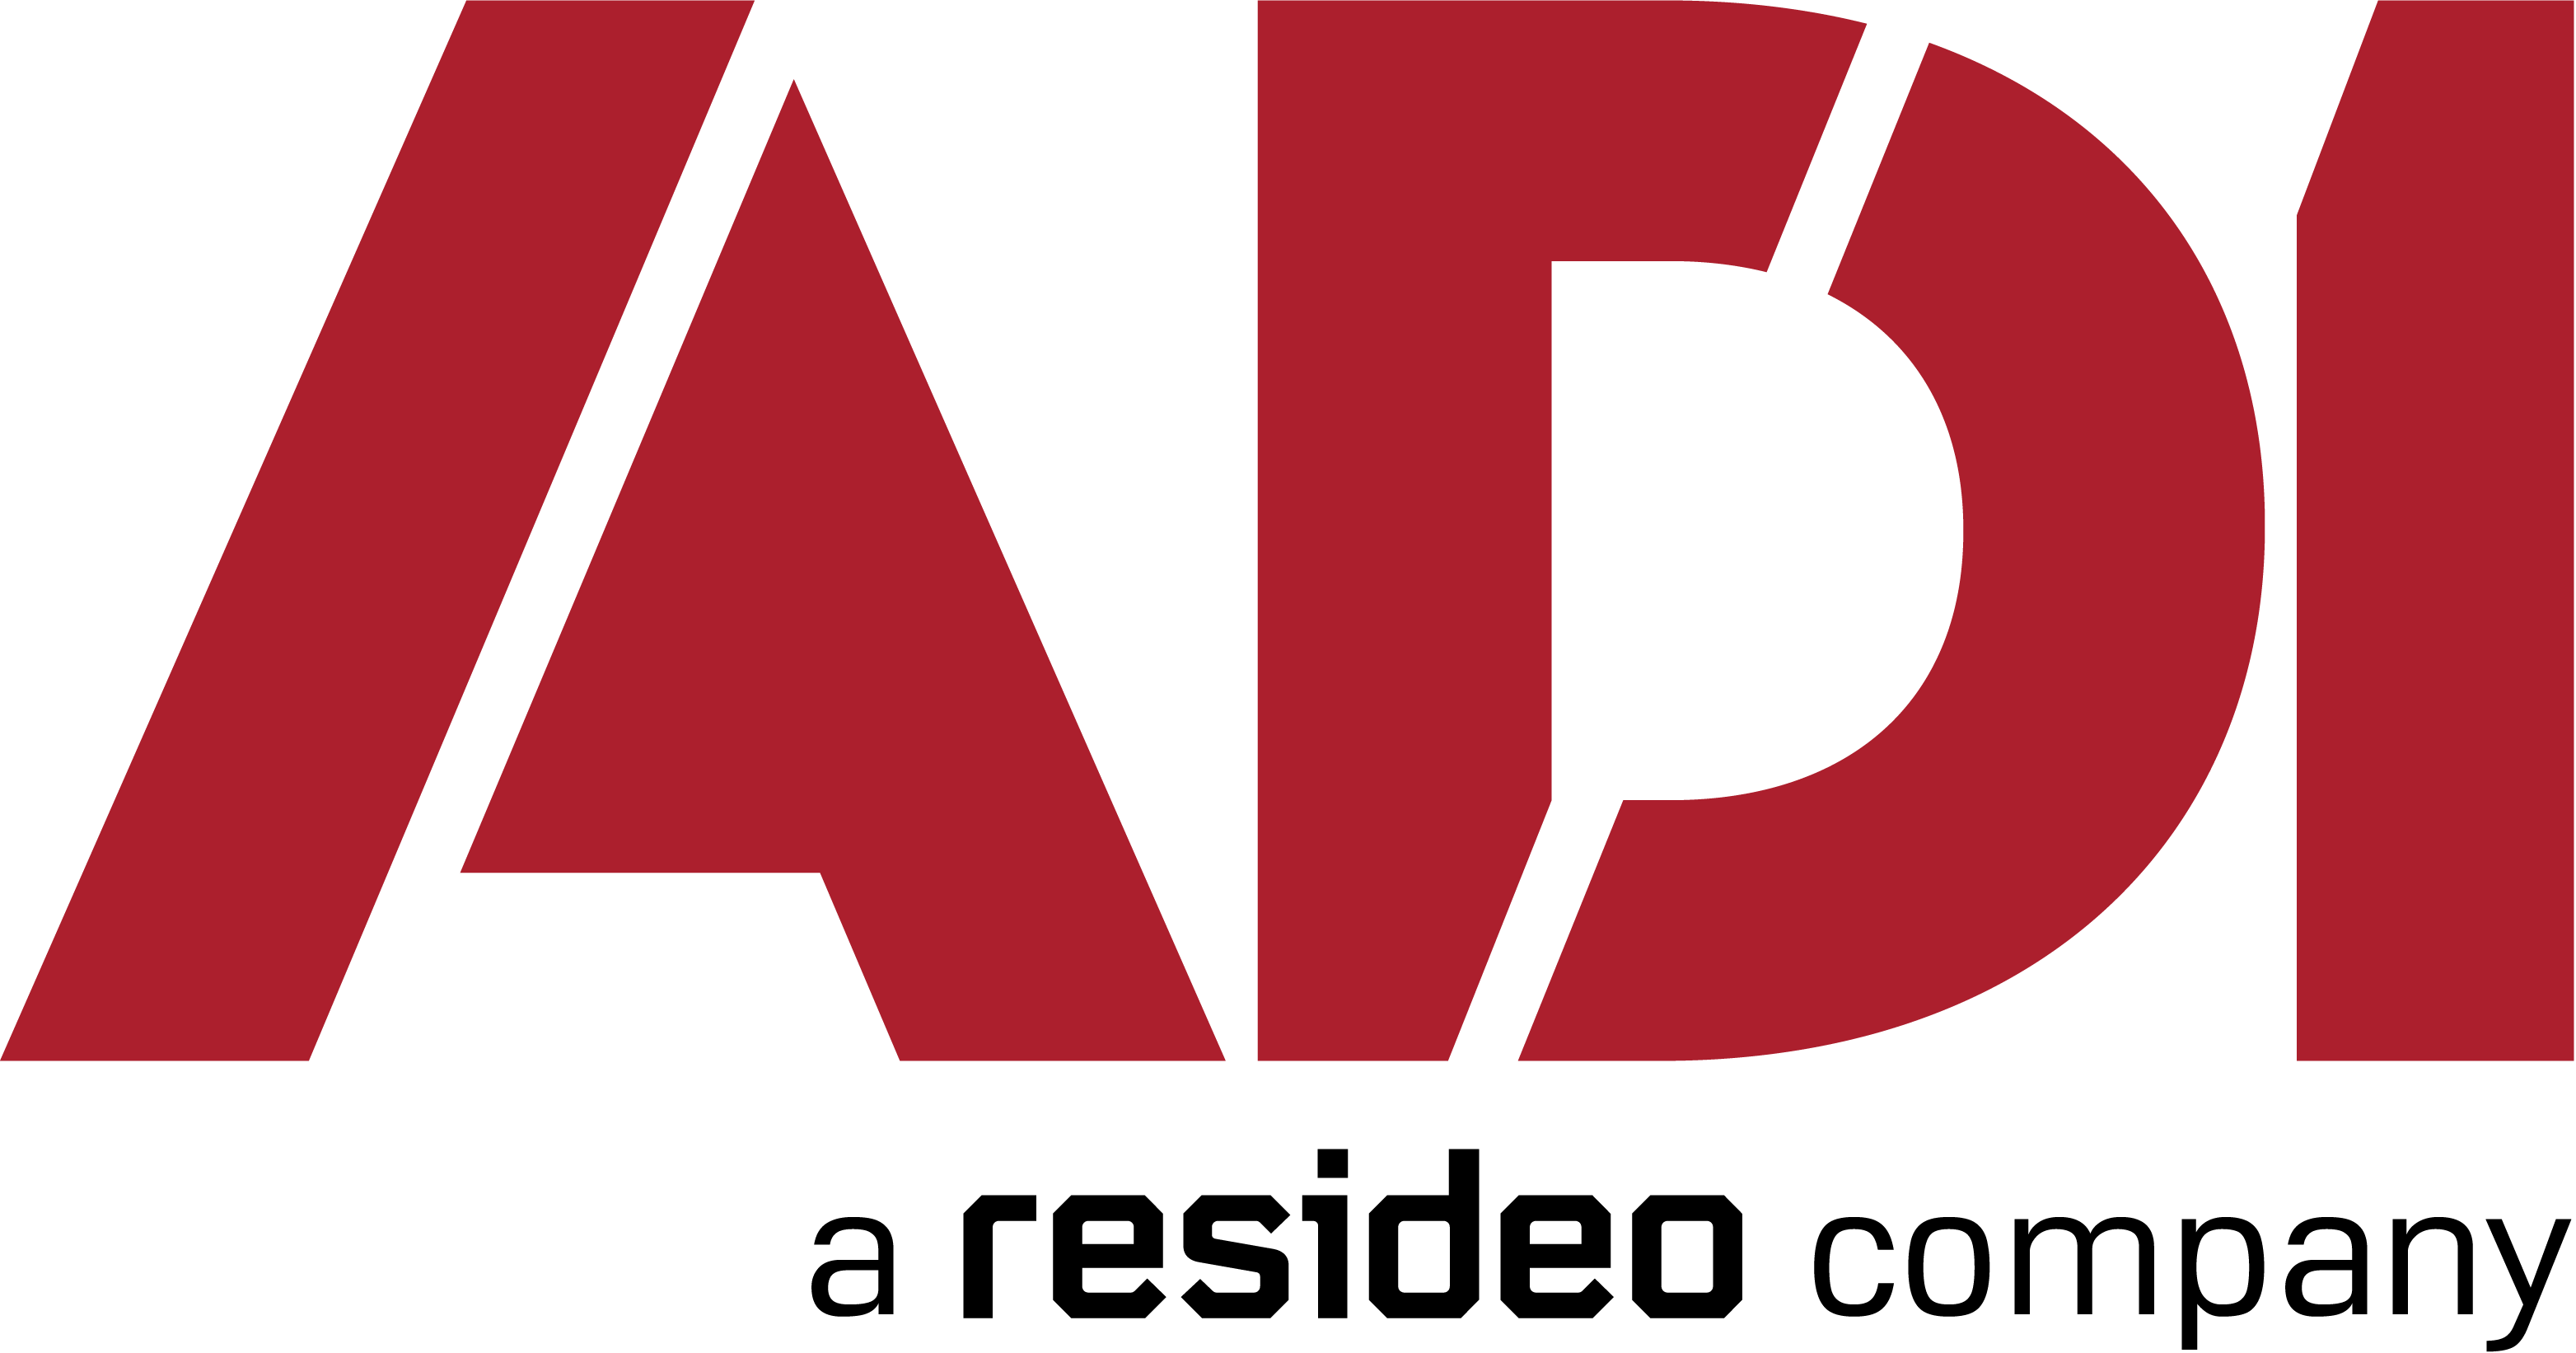 https://www.watchmanager.co.za/wp-content/uploads/2020/11/ADI-logo.png